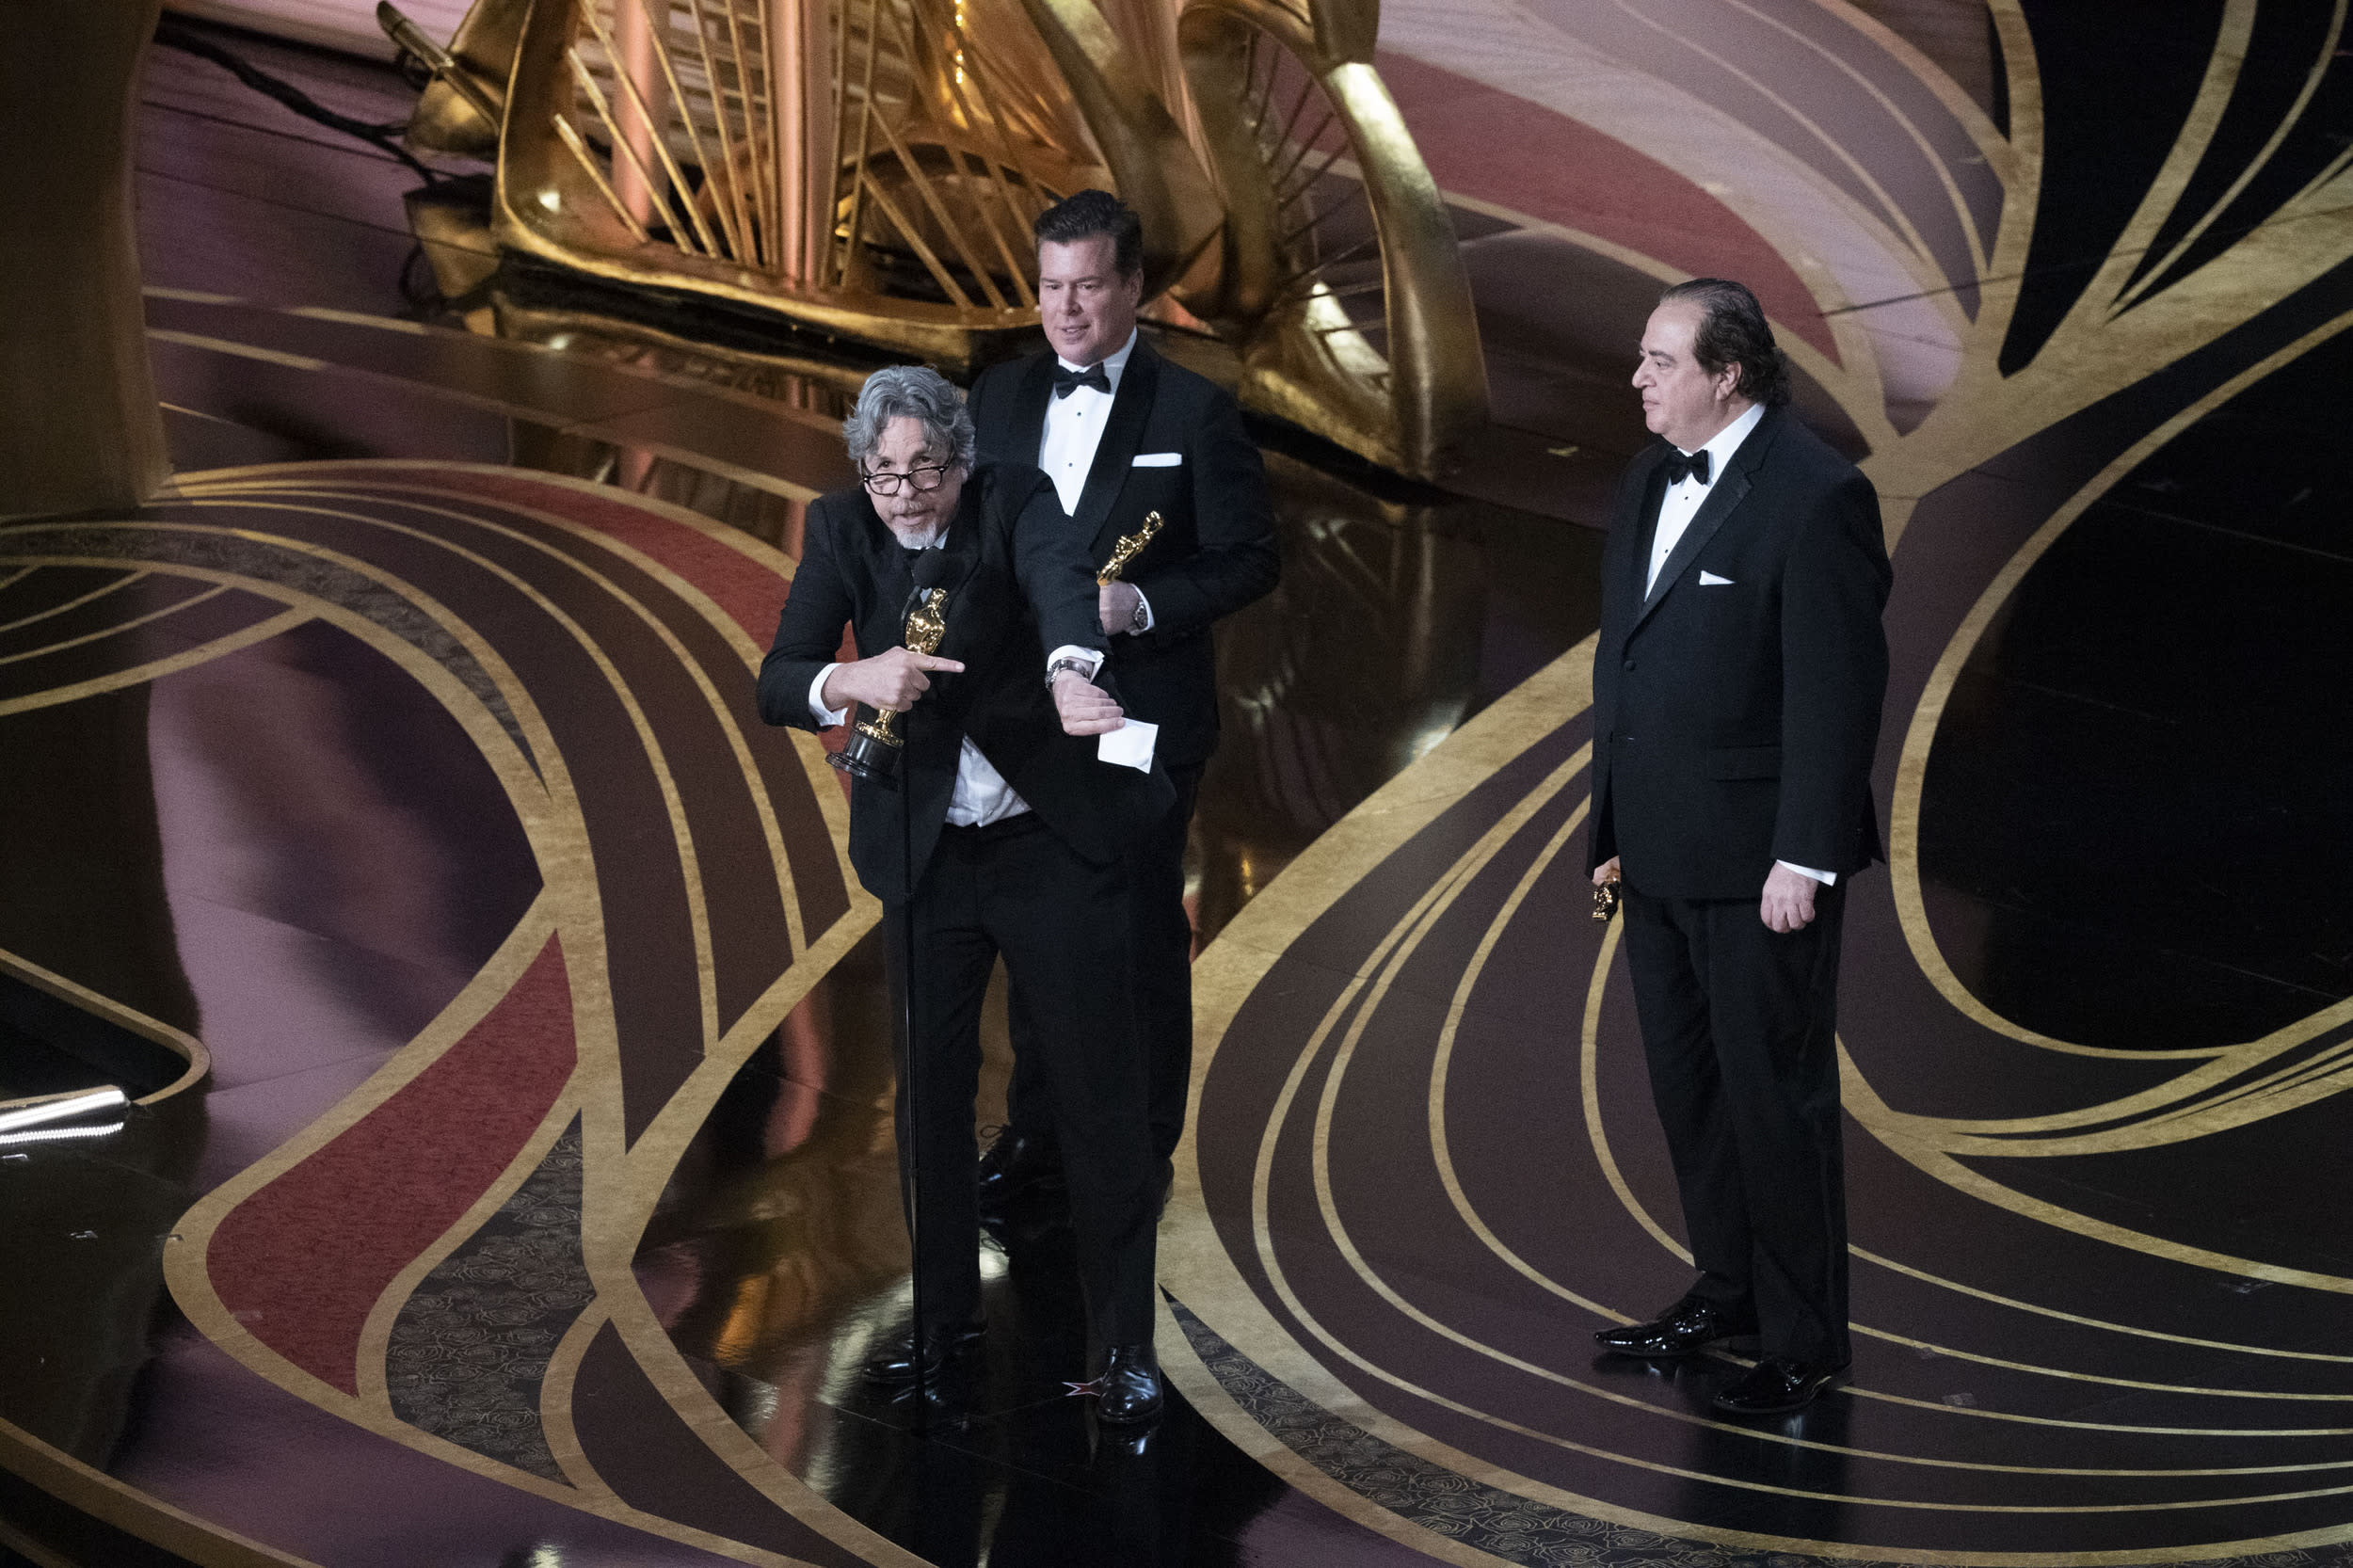 THE OSCARS® - The 91st Oscars® broadcasts live on Sunday, Feb. 24, 2019, at the Dolby Theatre® at Hollywood & Highland Center® in Hollywood and will be televised live on The ABC Television Network at 8:00 p.m. EST/5:00 p.m. PST.  (Ed Herrera via Getty Images) PETER FARRELLY, BRIAN CURRIE, NICK VALLELONGA